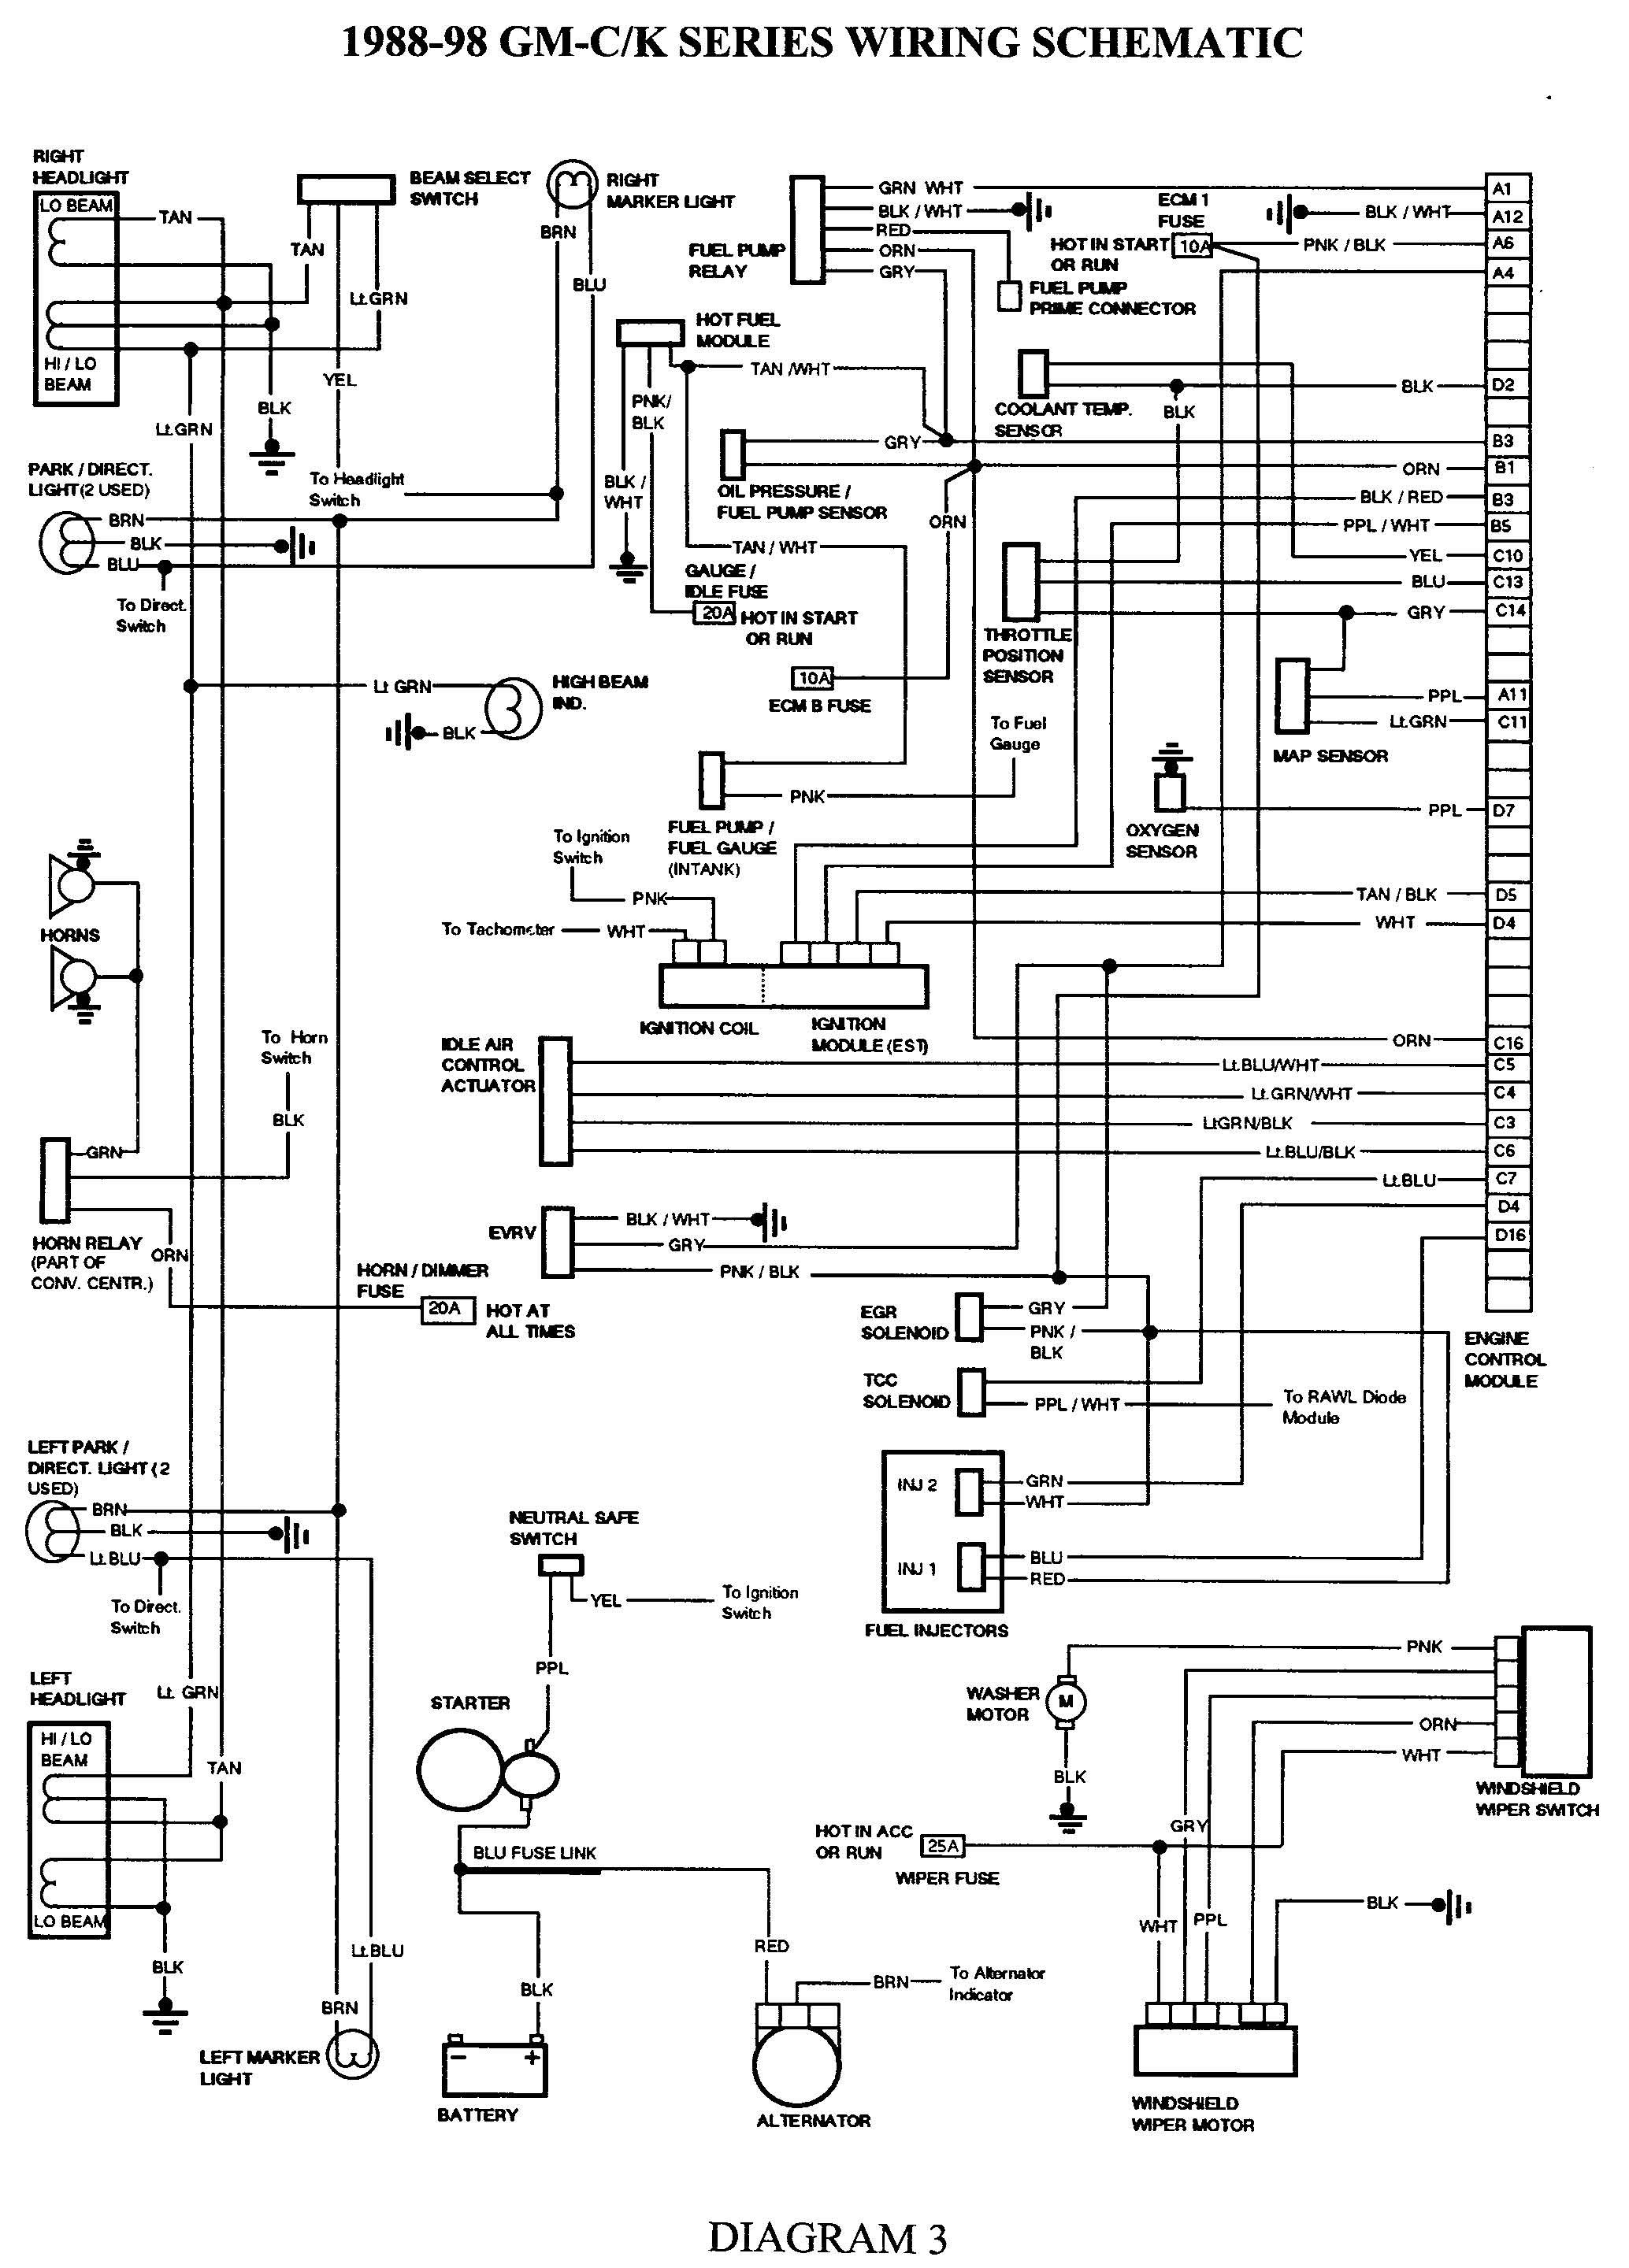 medium resolution of gm delco bose wiring diagram page 2 wiring library delco car stereo wiring diagram delco bose wiring diagram